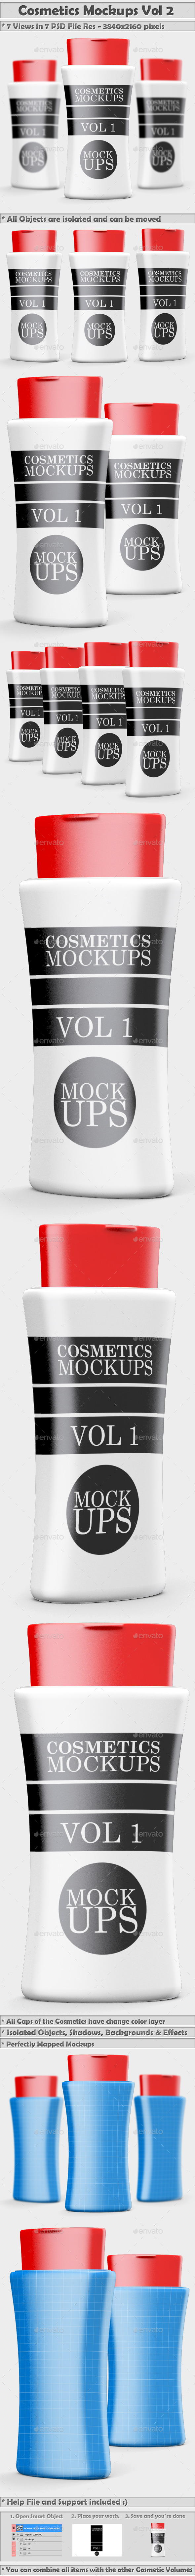 Cosmetics Mockups Vol 2 - Beauty Packaging